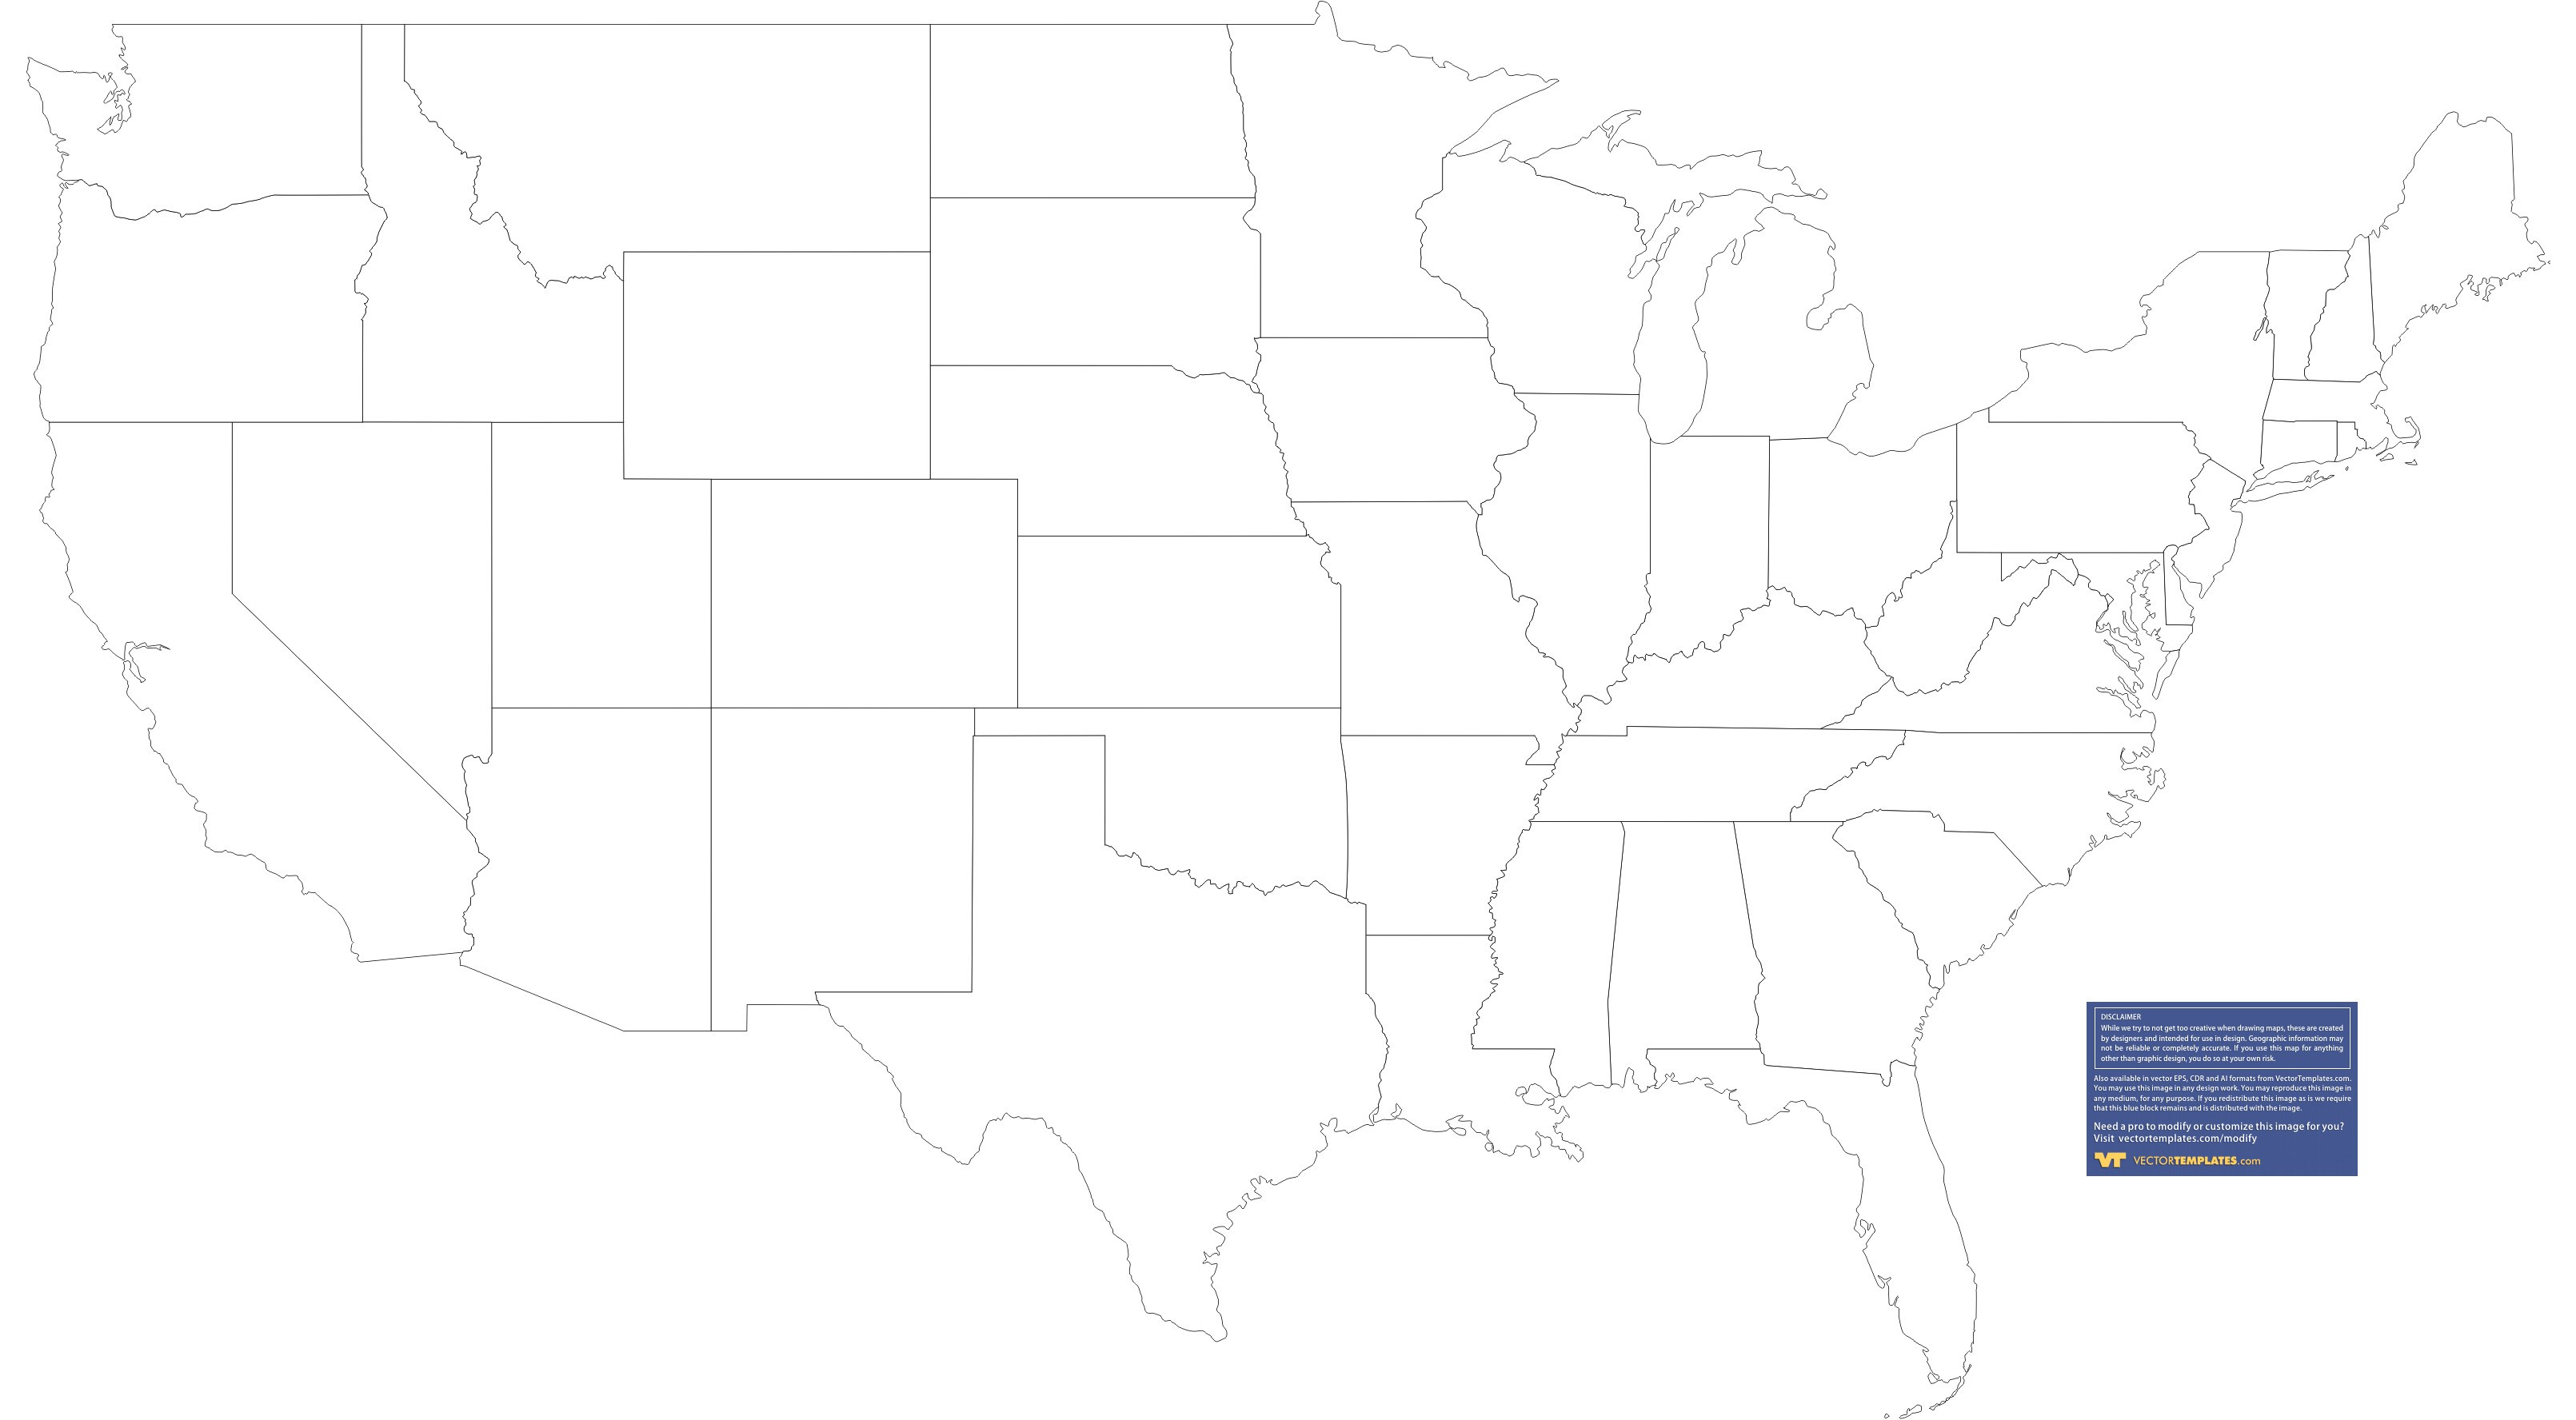 Texas Map Vector Free Download at GetDrawings.com | Free for ...